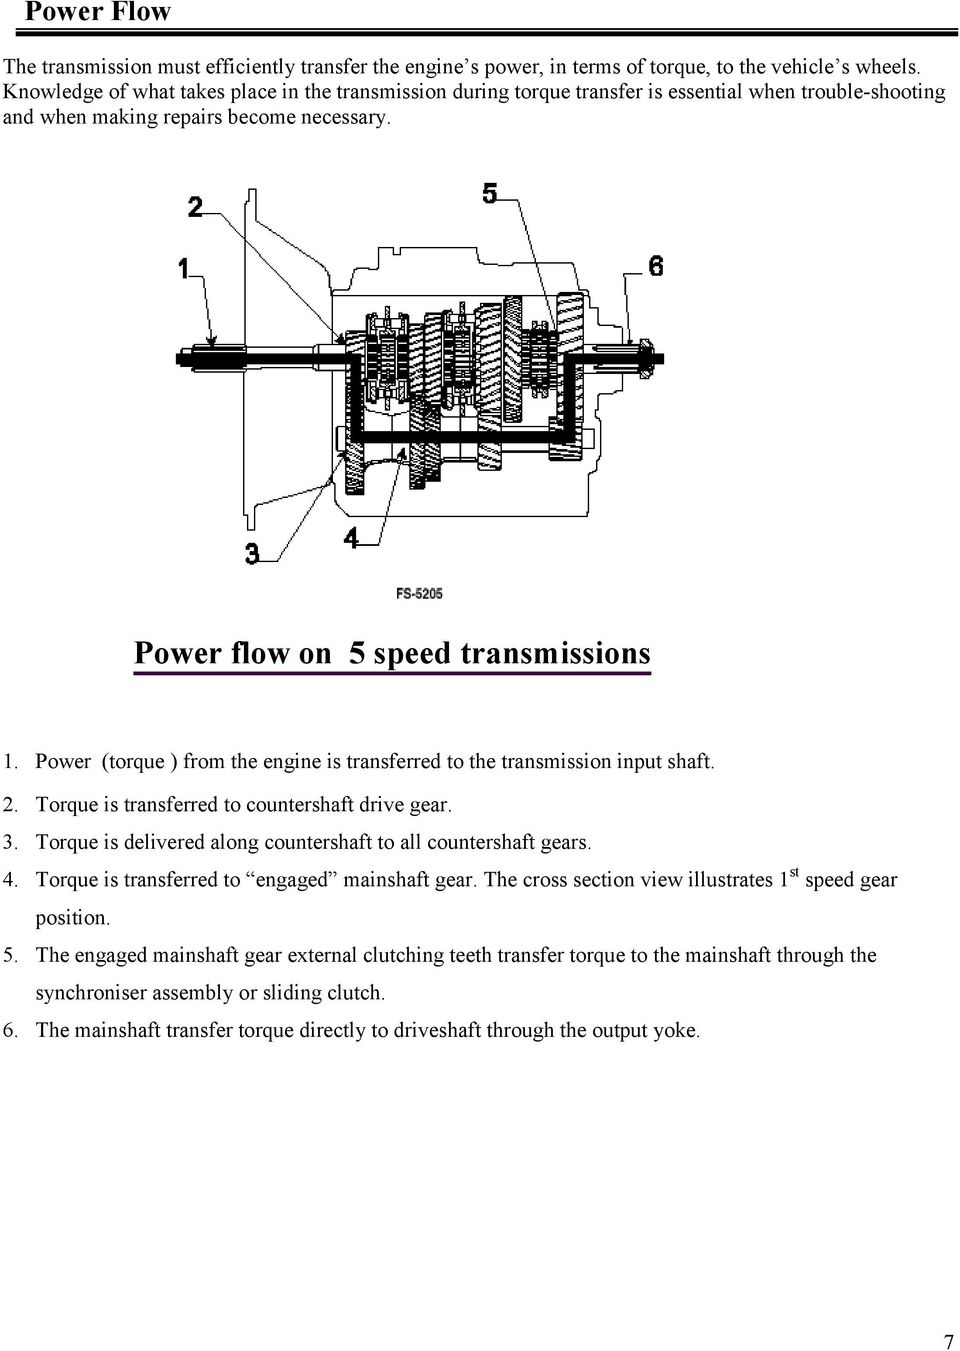 medium resolution of power torque from the engine is transferred to the transmission input shaft 2